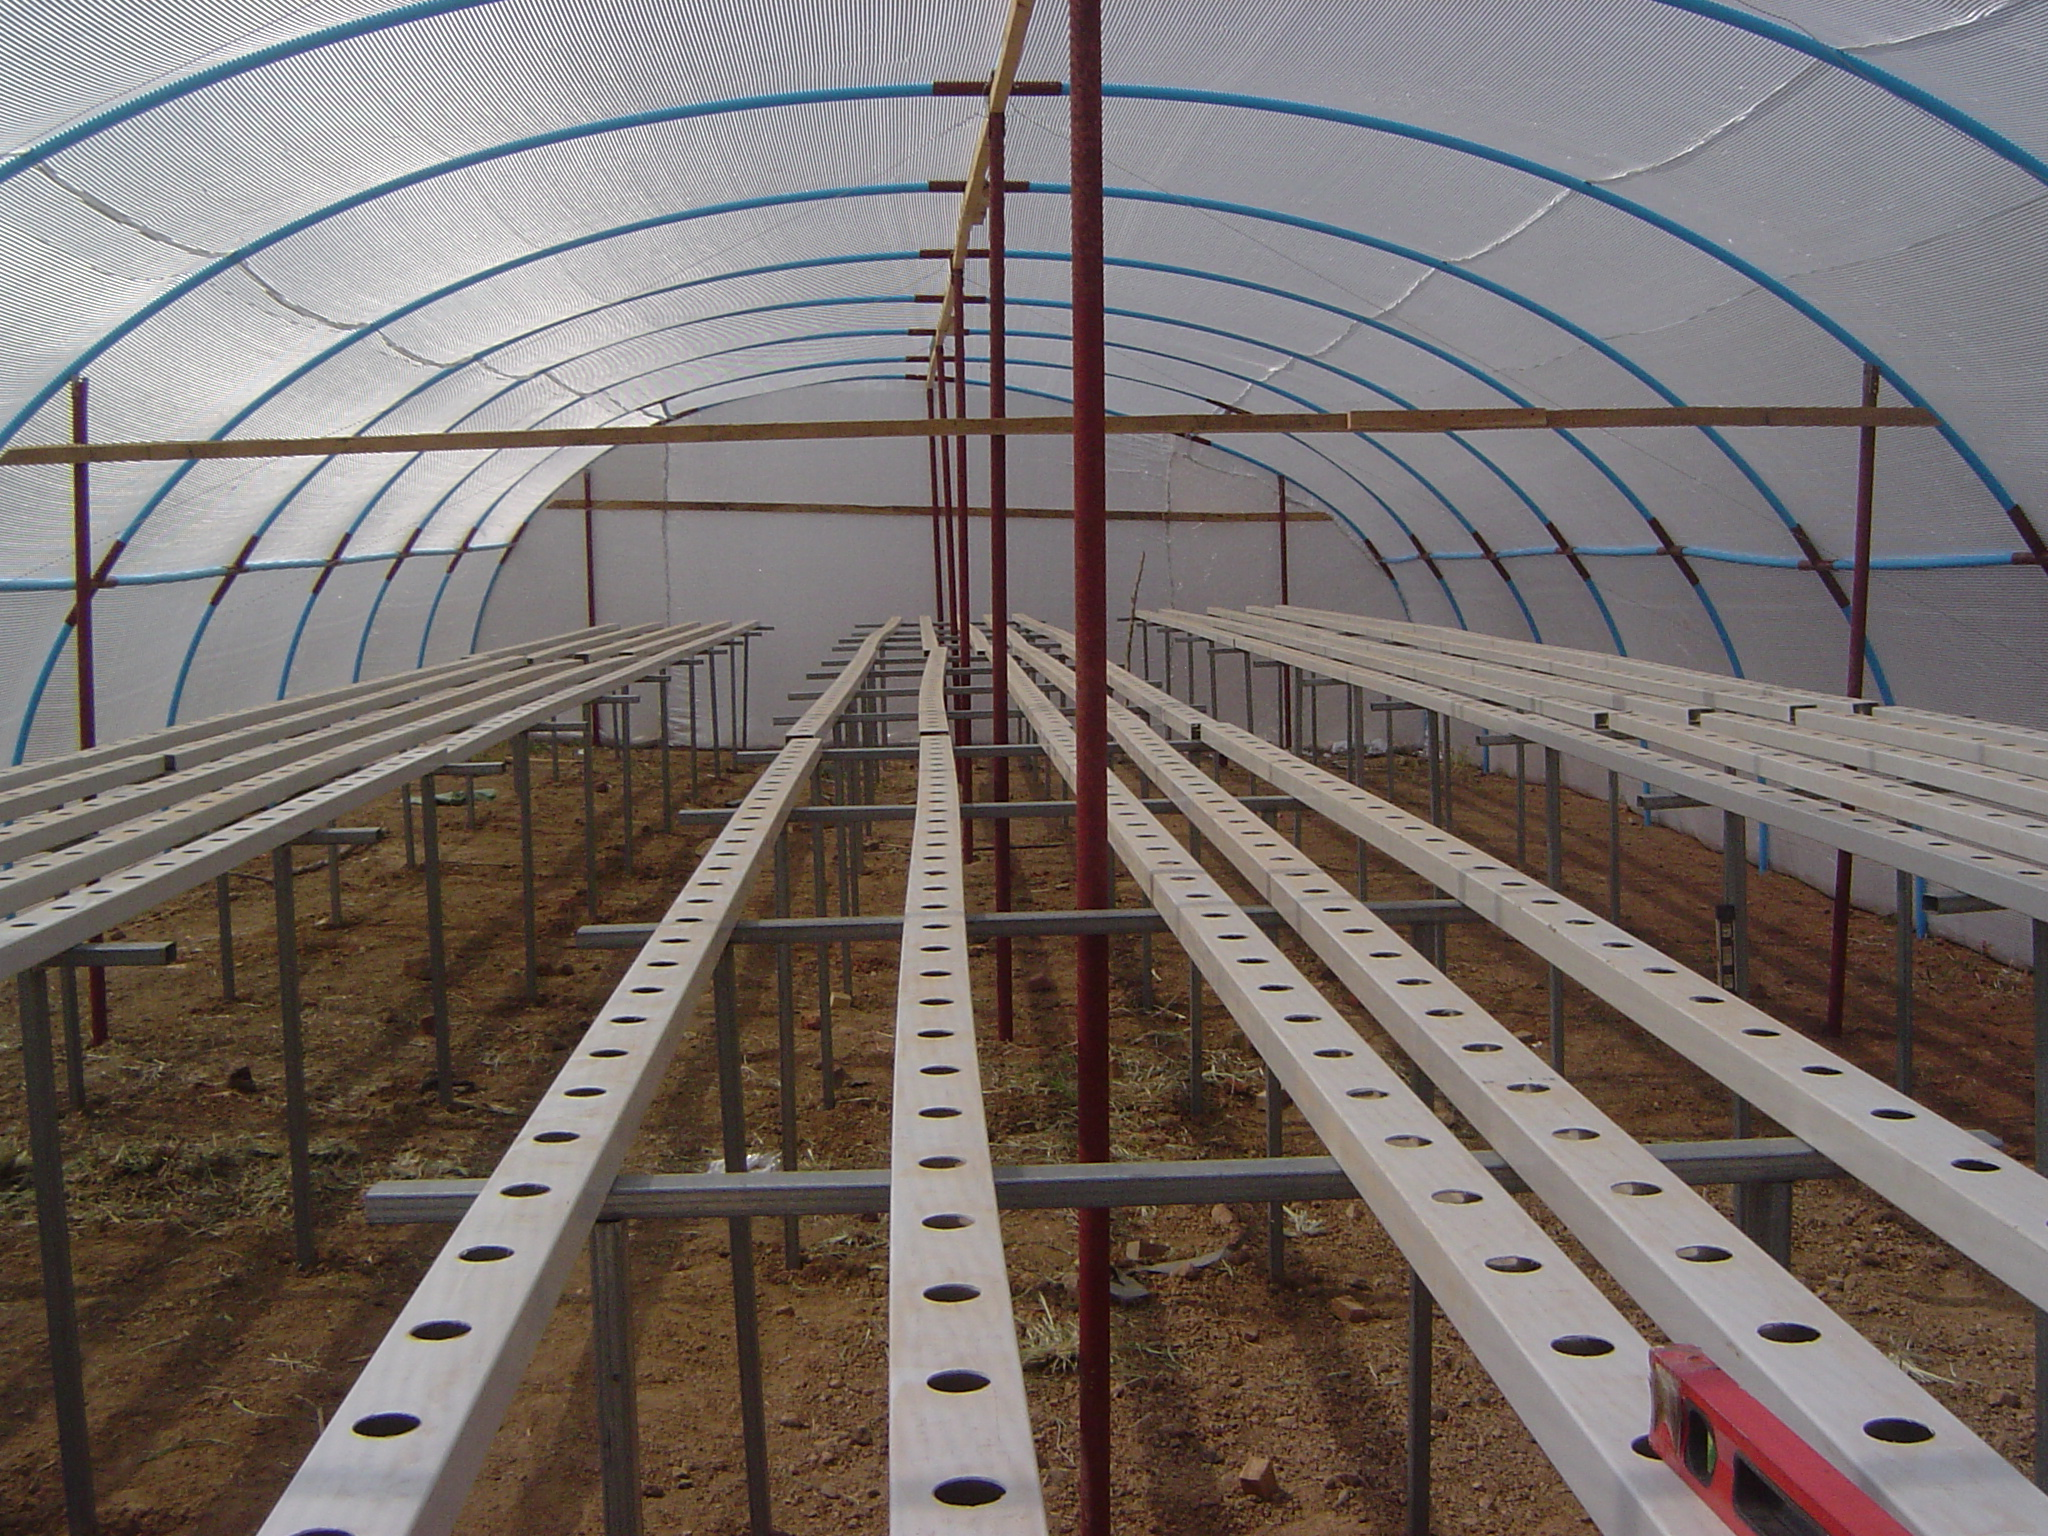 NFT Hydroponic System in a High Tunnel